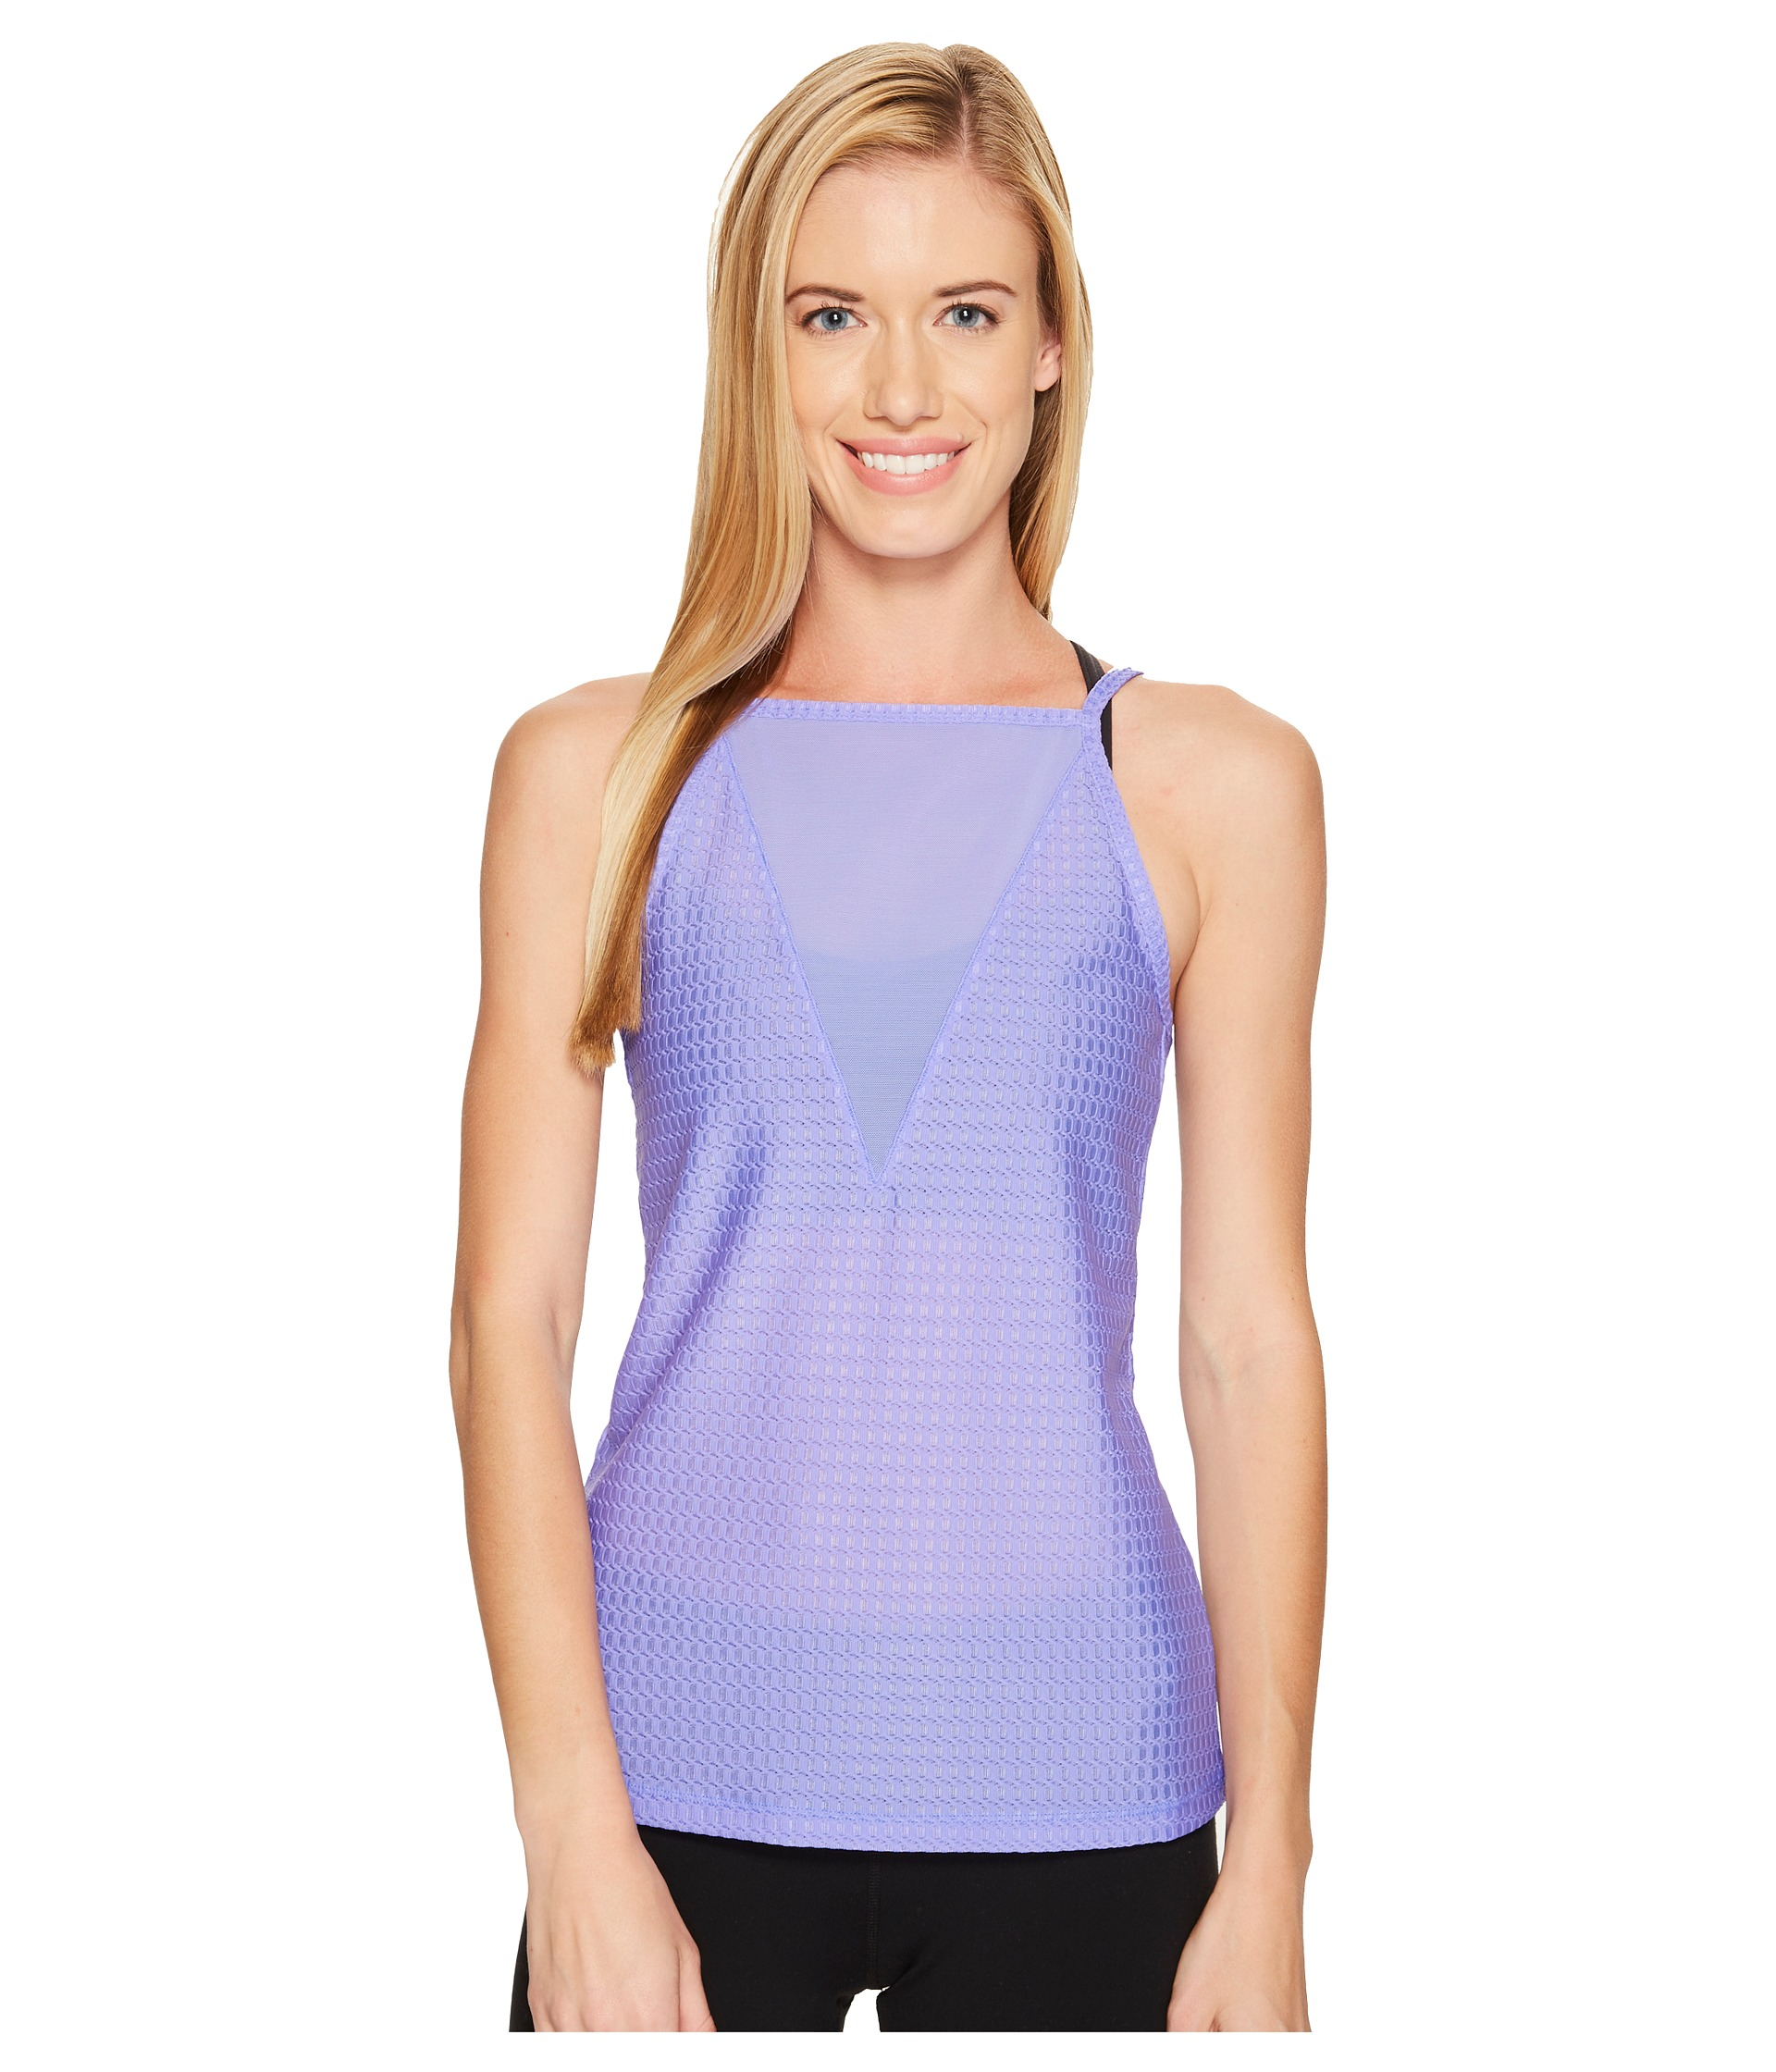 Lorna jane gravity excel tank top at for Schoolboy q girl power shirt